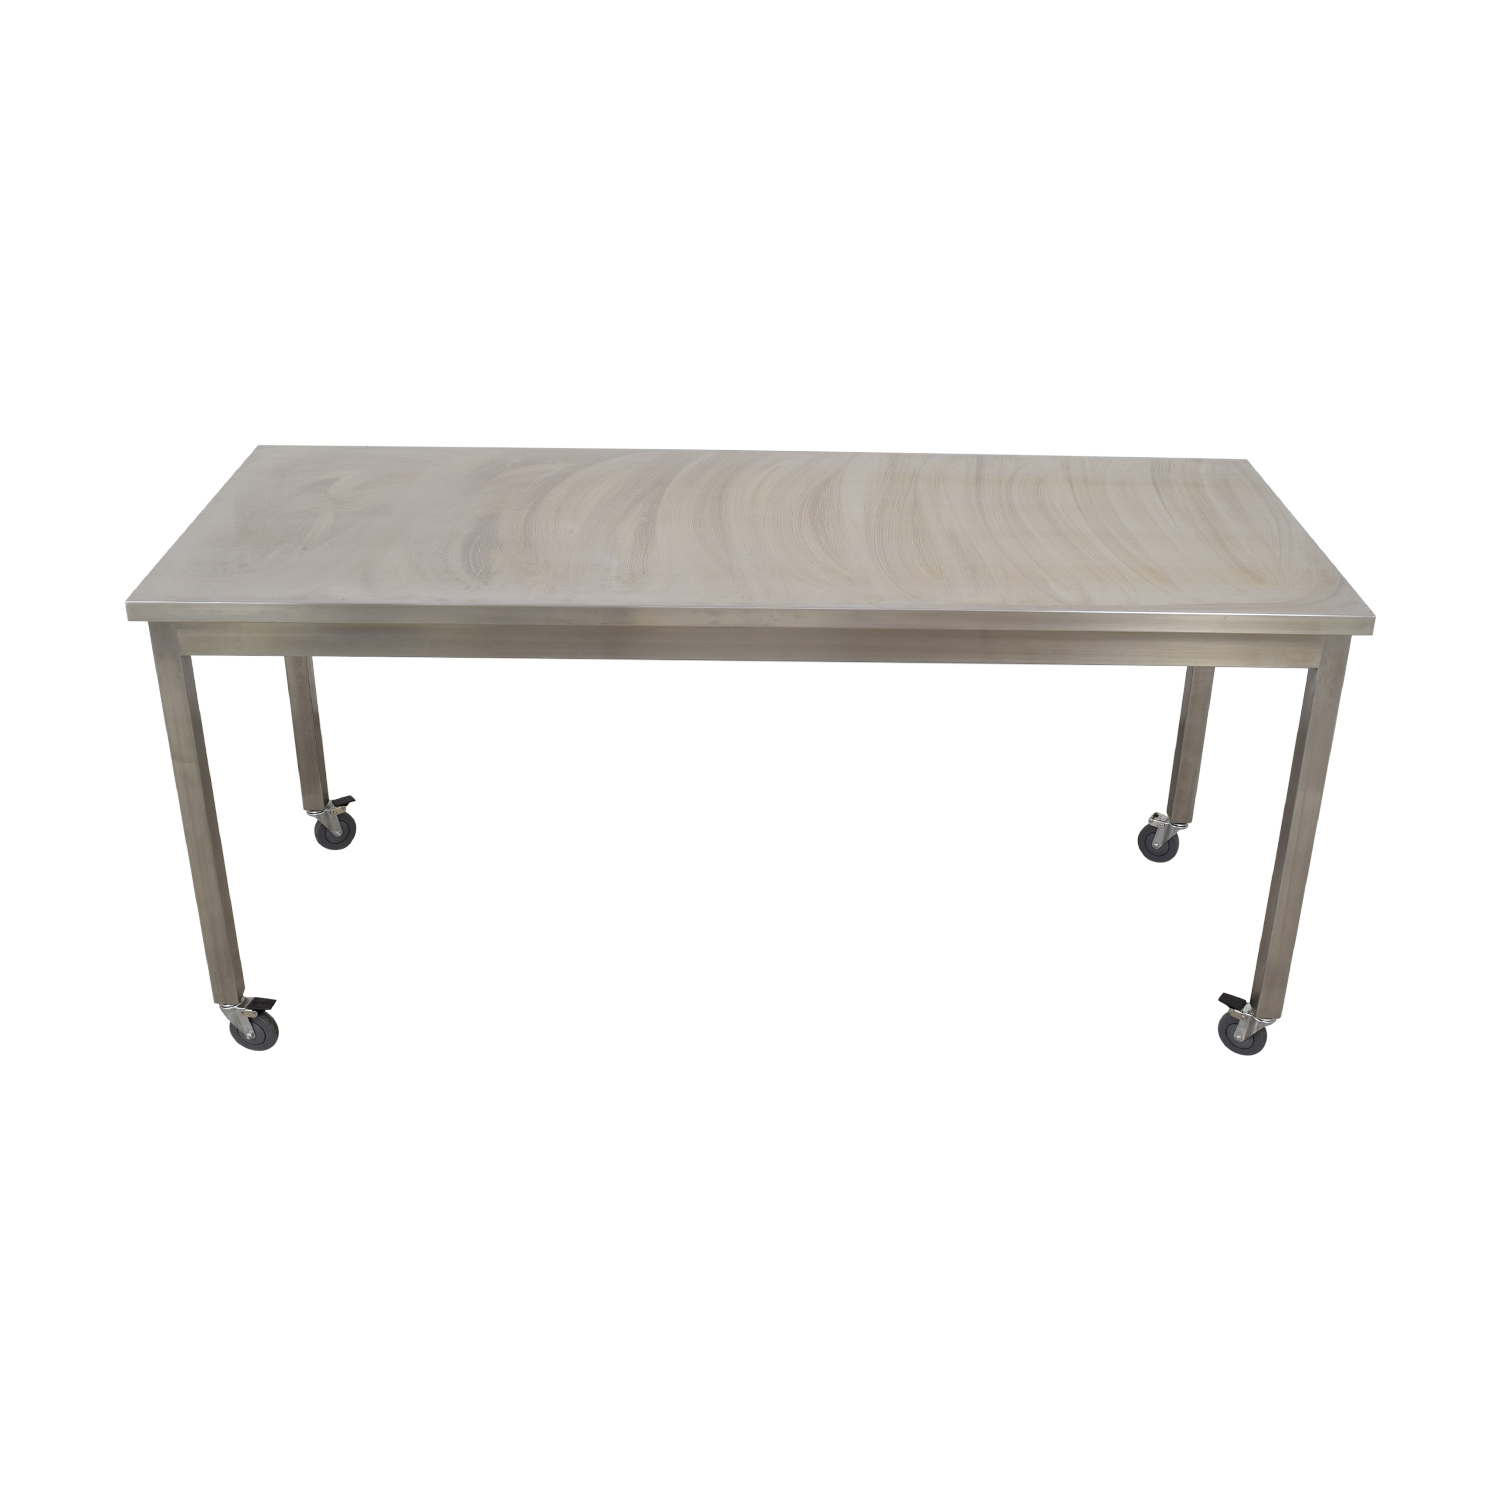 87% OFF - Bowery Kitchen Bowery Kitchen Stainless Steel High Top Table /  Tables